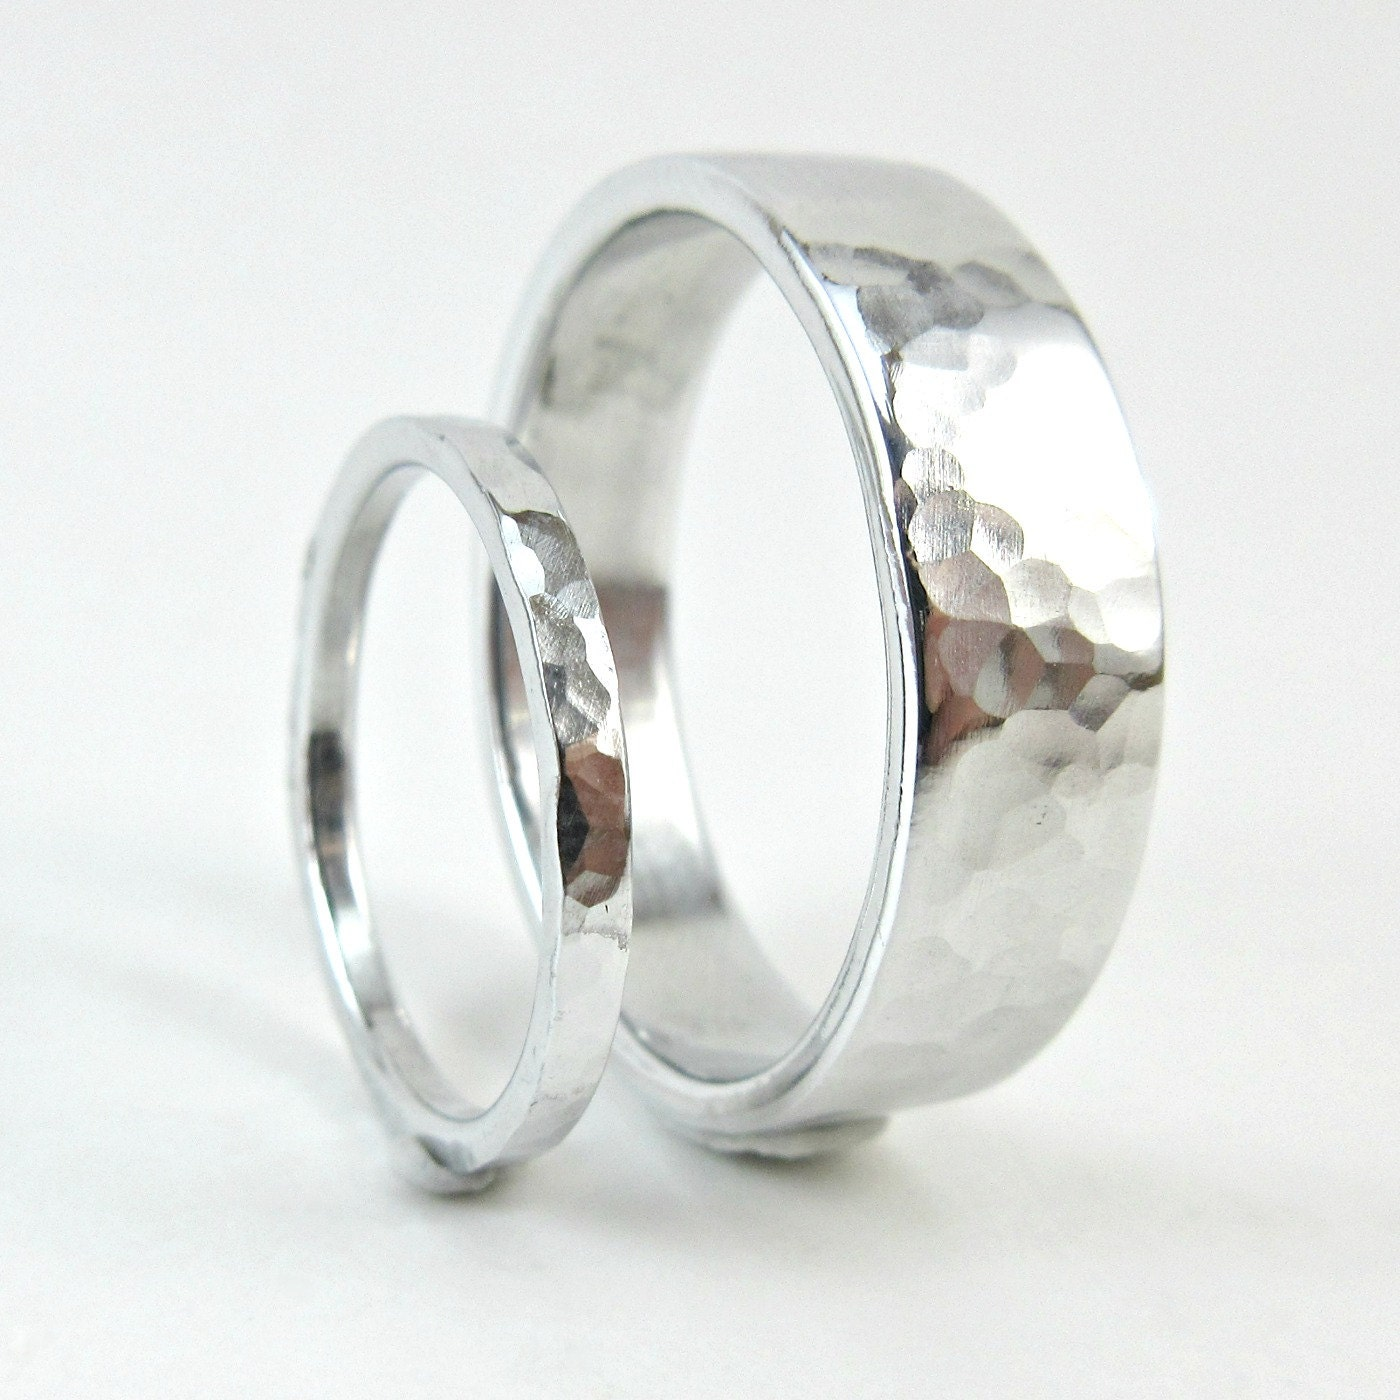 Hammered Aluminum Ring Set 10 Year Anniversary Bands His and